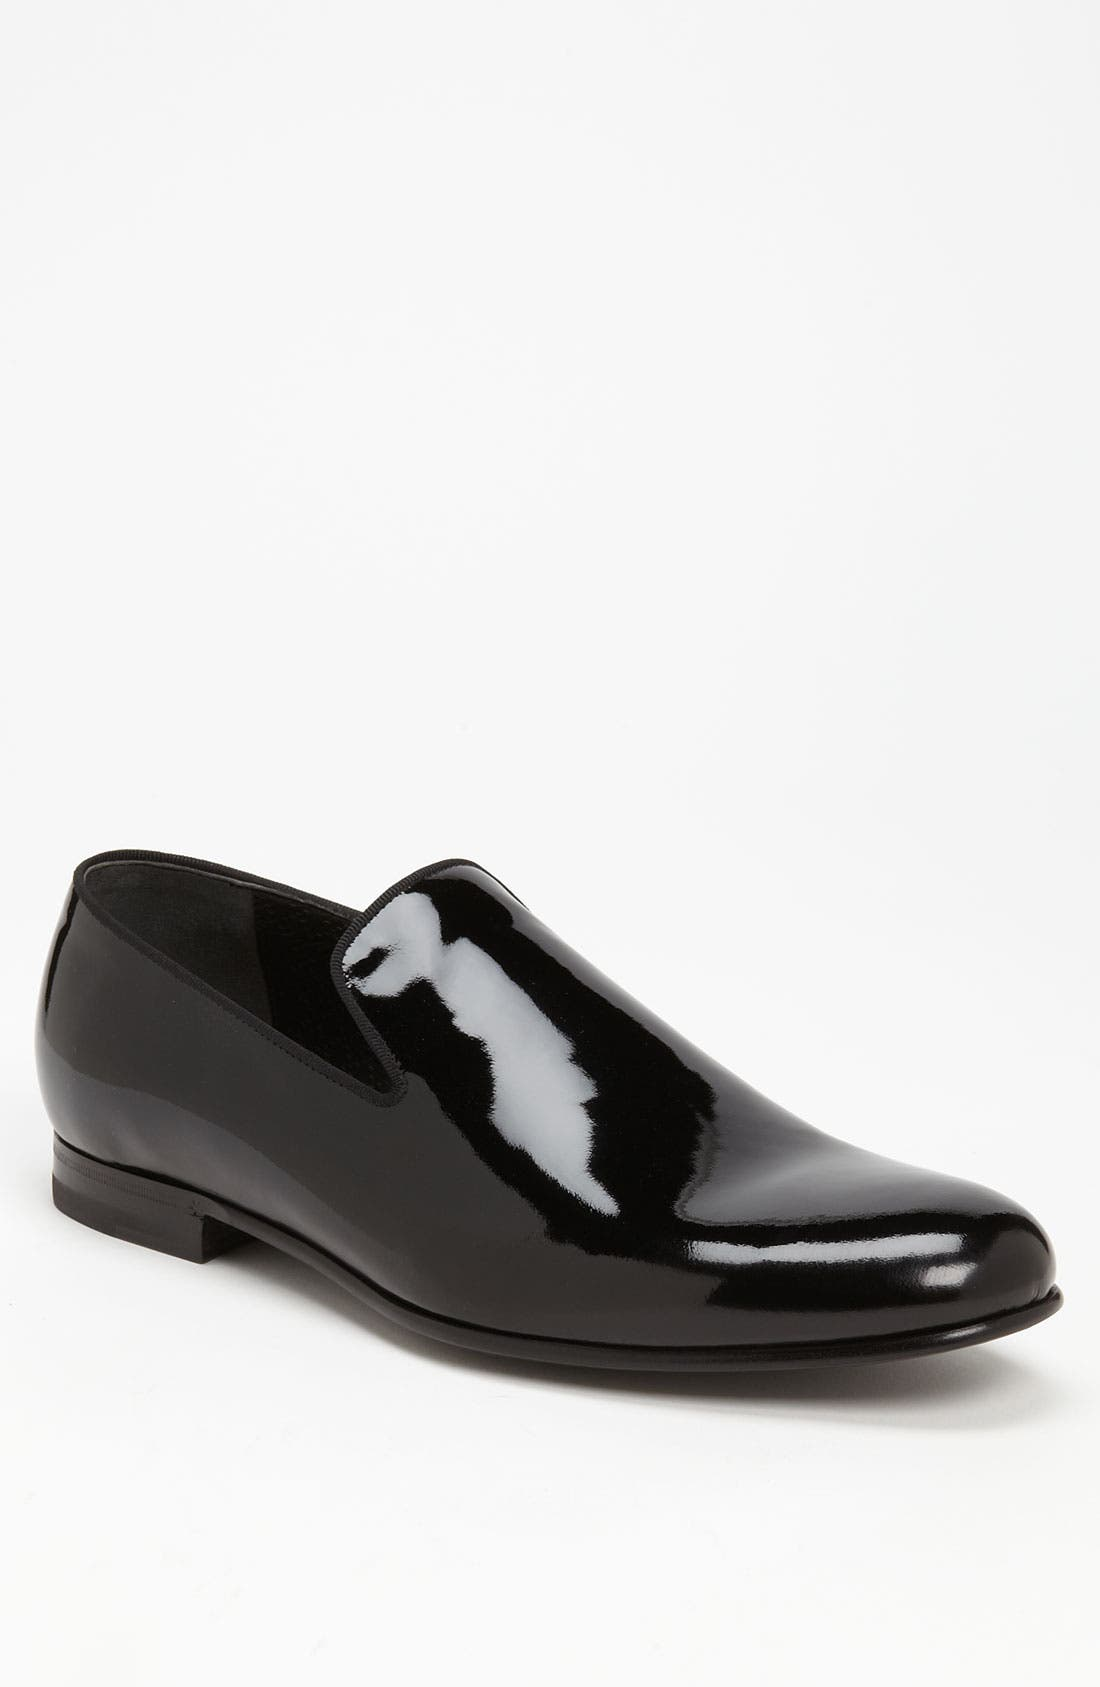 Main Image - Gucci 'Alexandre' Loafer